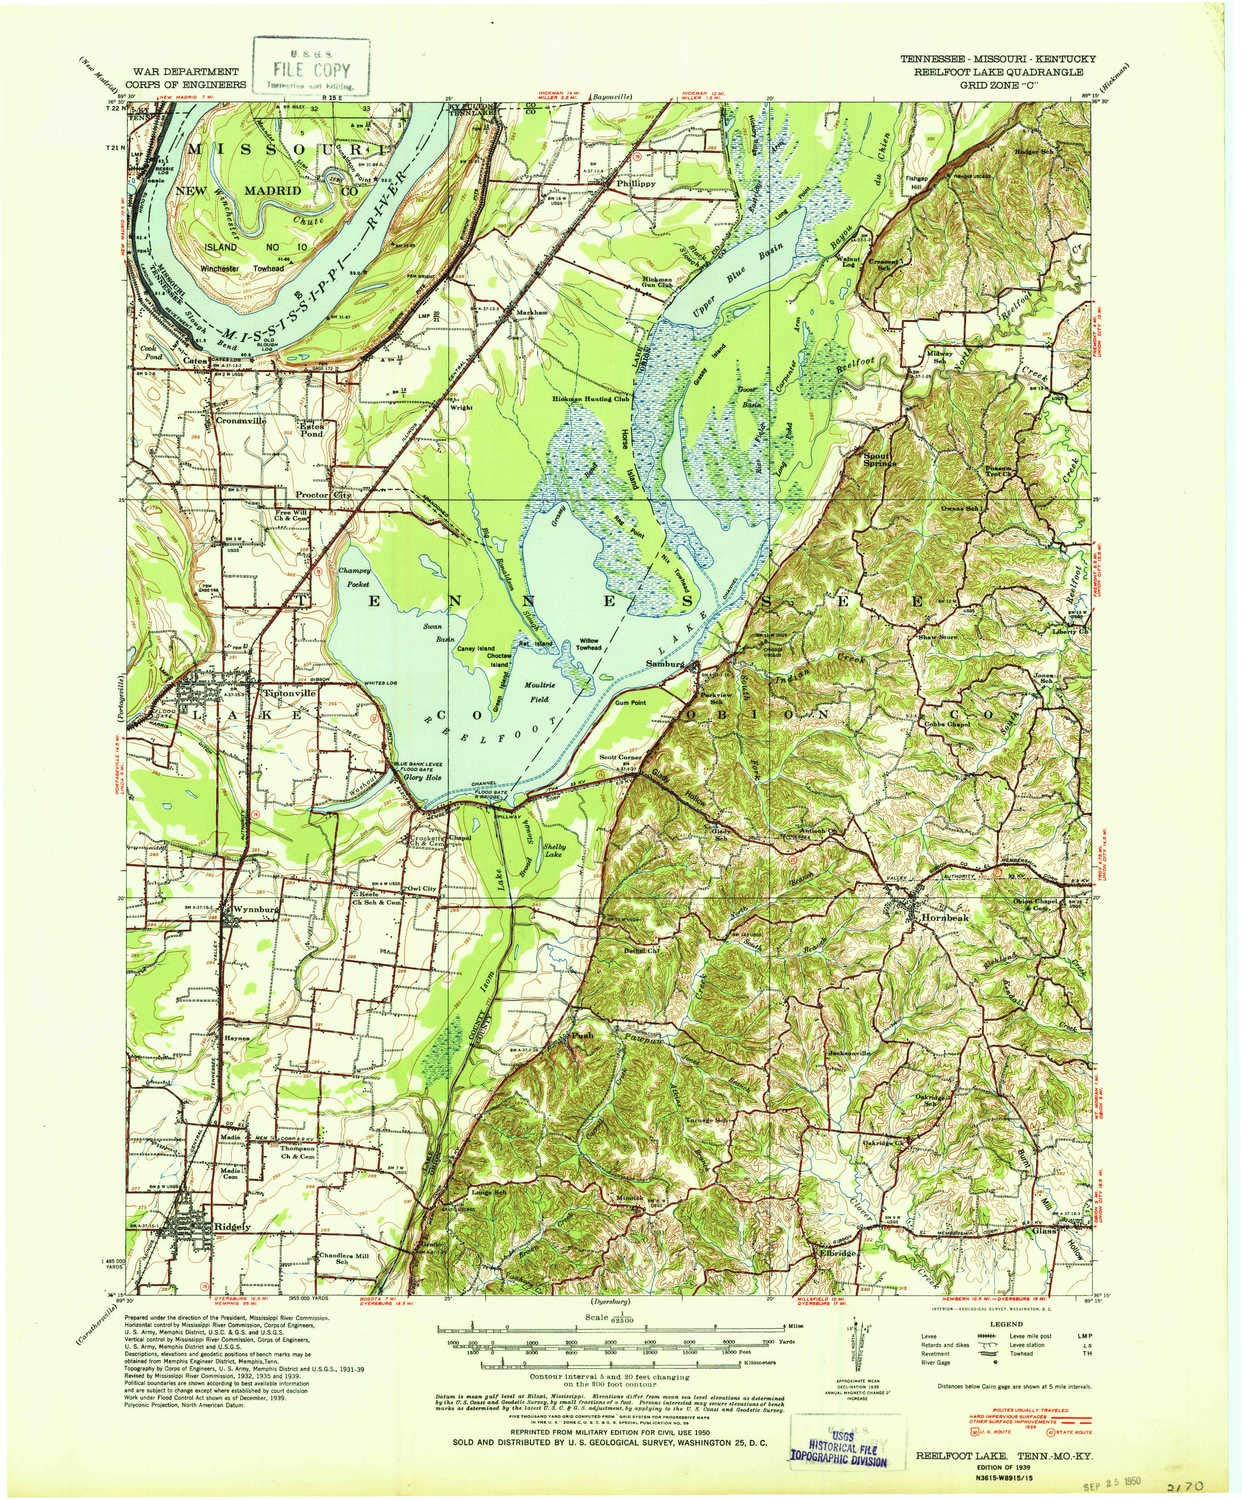 Reelfoot Lake Tennessee Map.Amazon Com Reelfoot Lake Tn Topo Map 1 62500 Scale 15 X 15 Minute